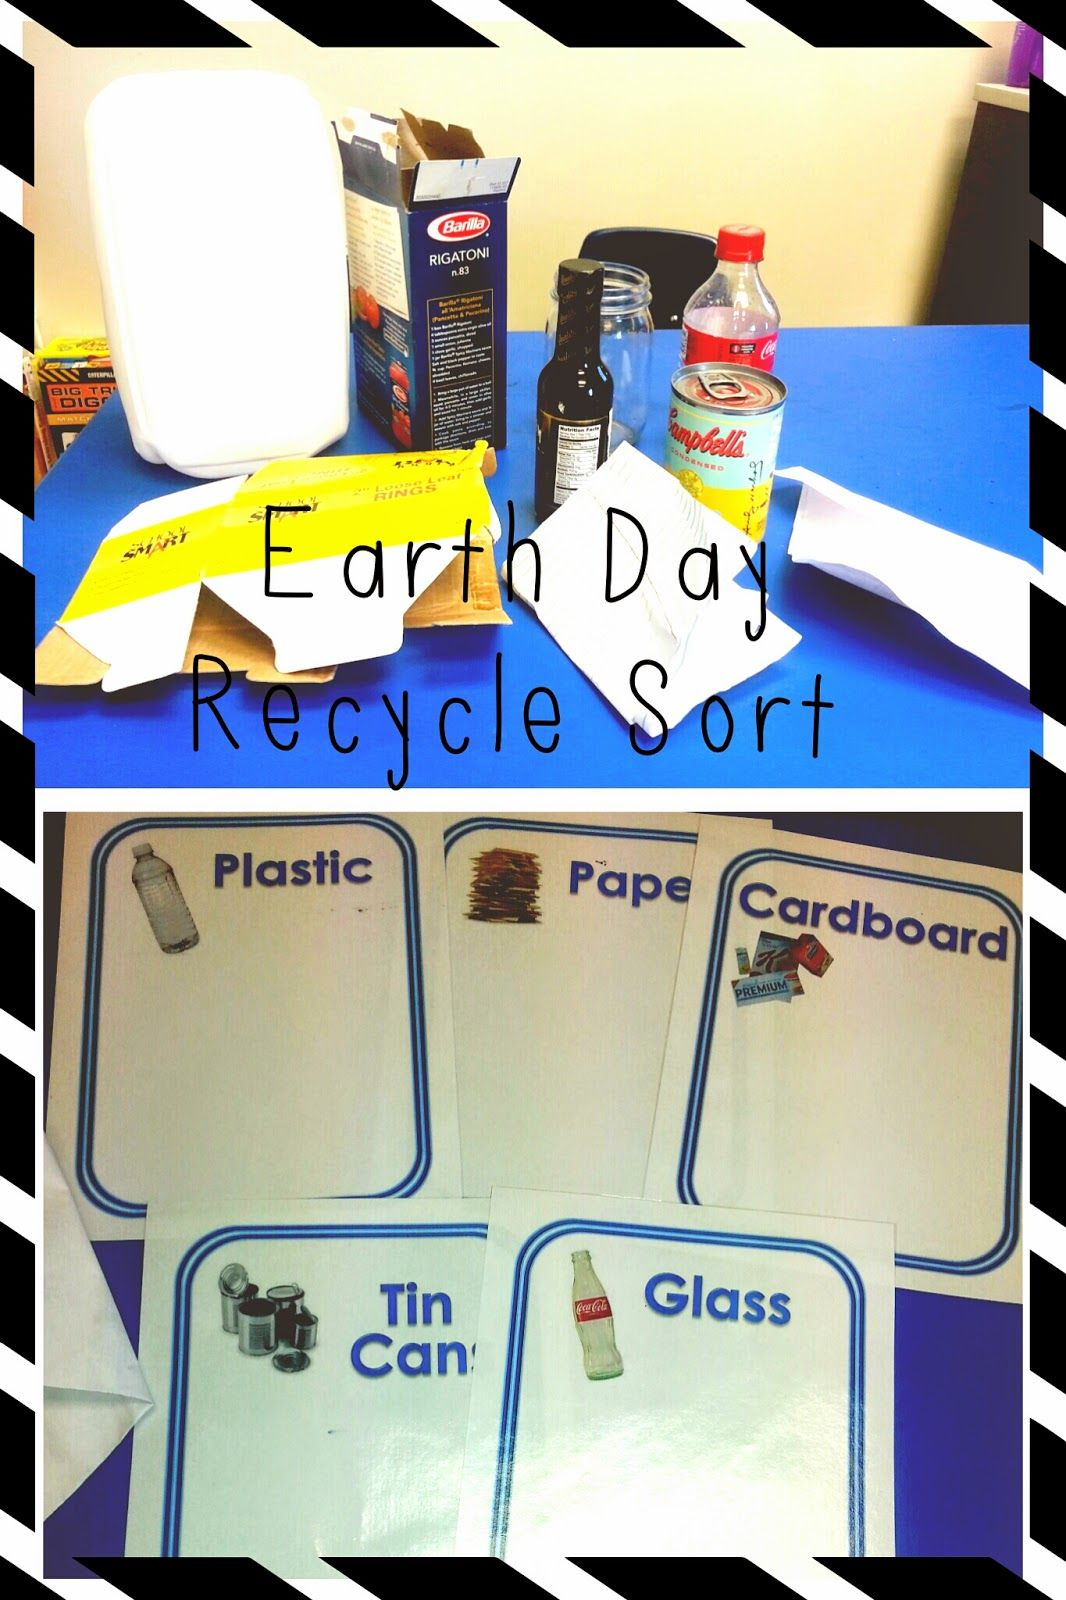 Earth Day Recycle Sort Small Groups Activity